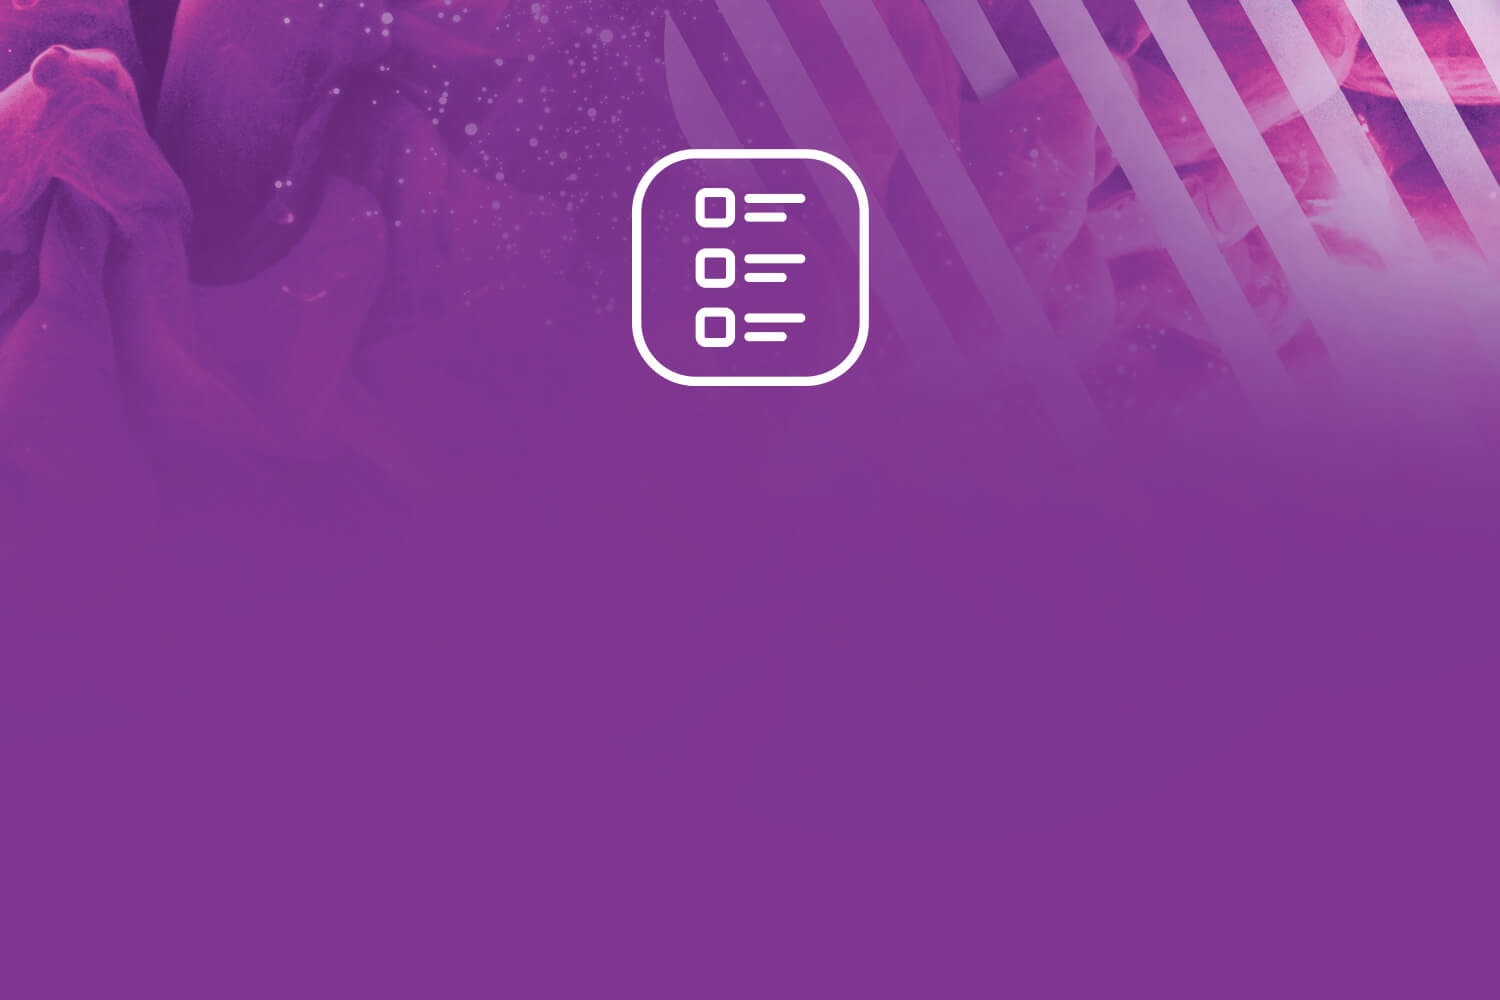 Purple ink with striped white squircle in background and a task/list icon indicating an agenda